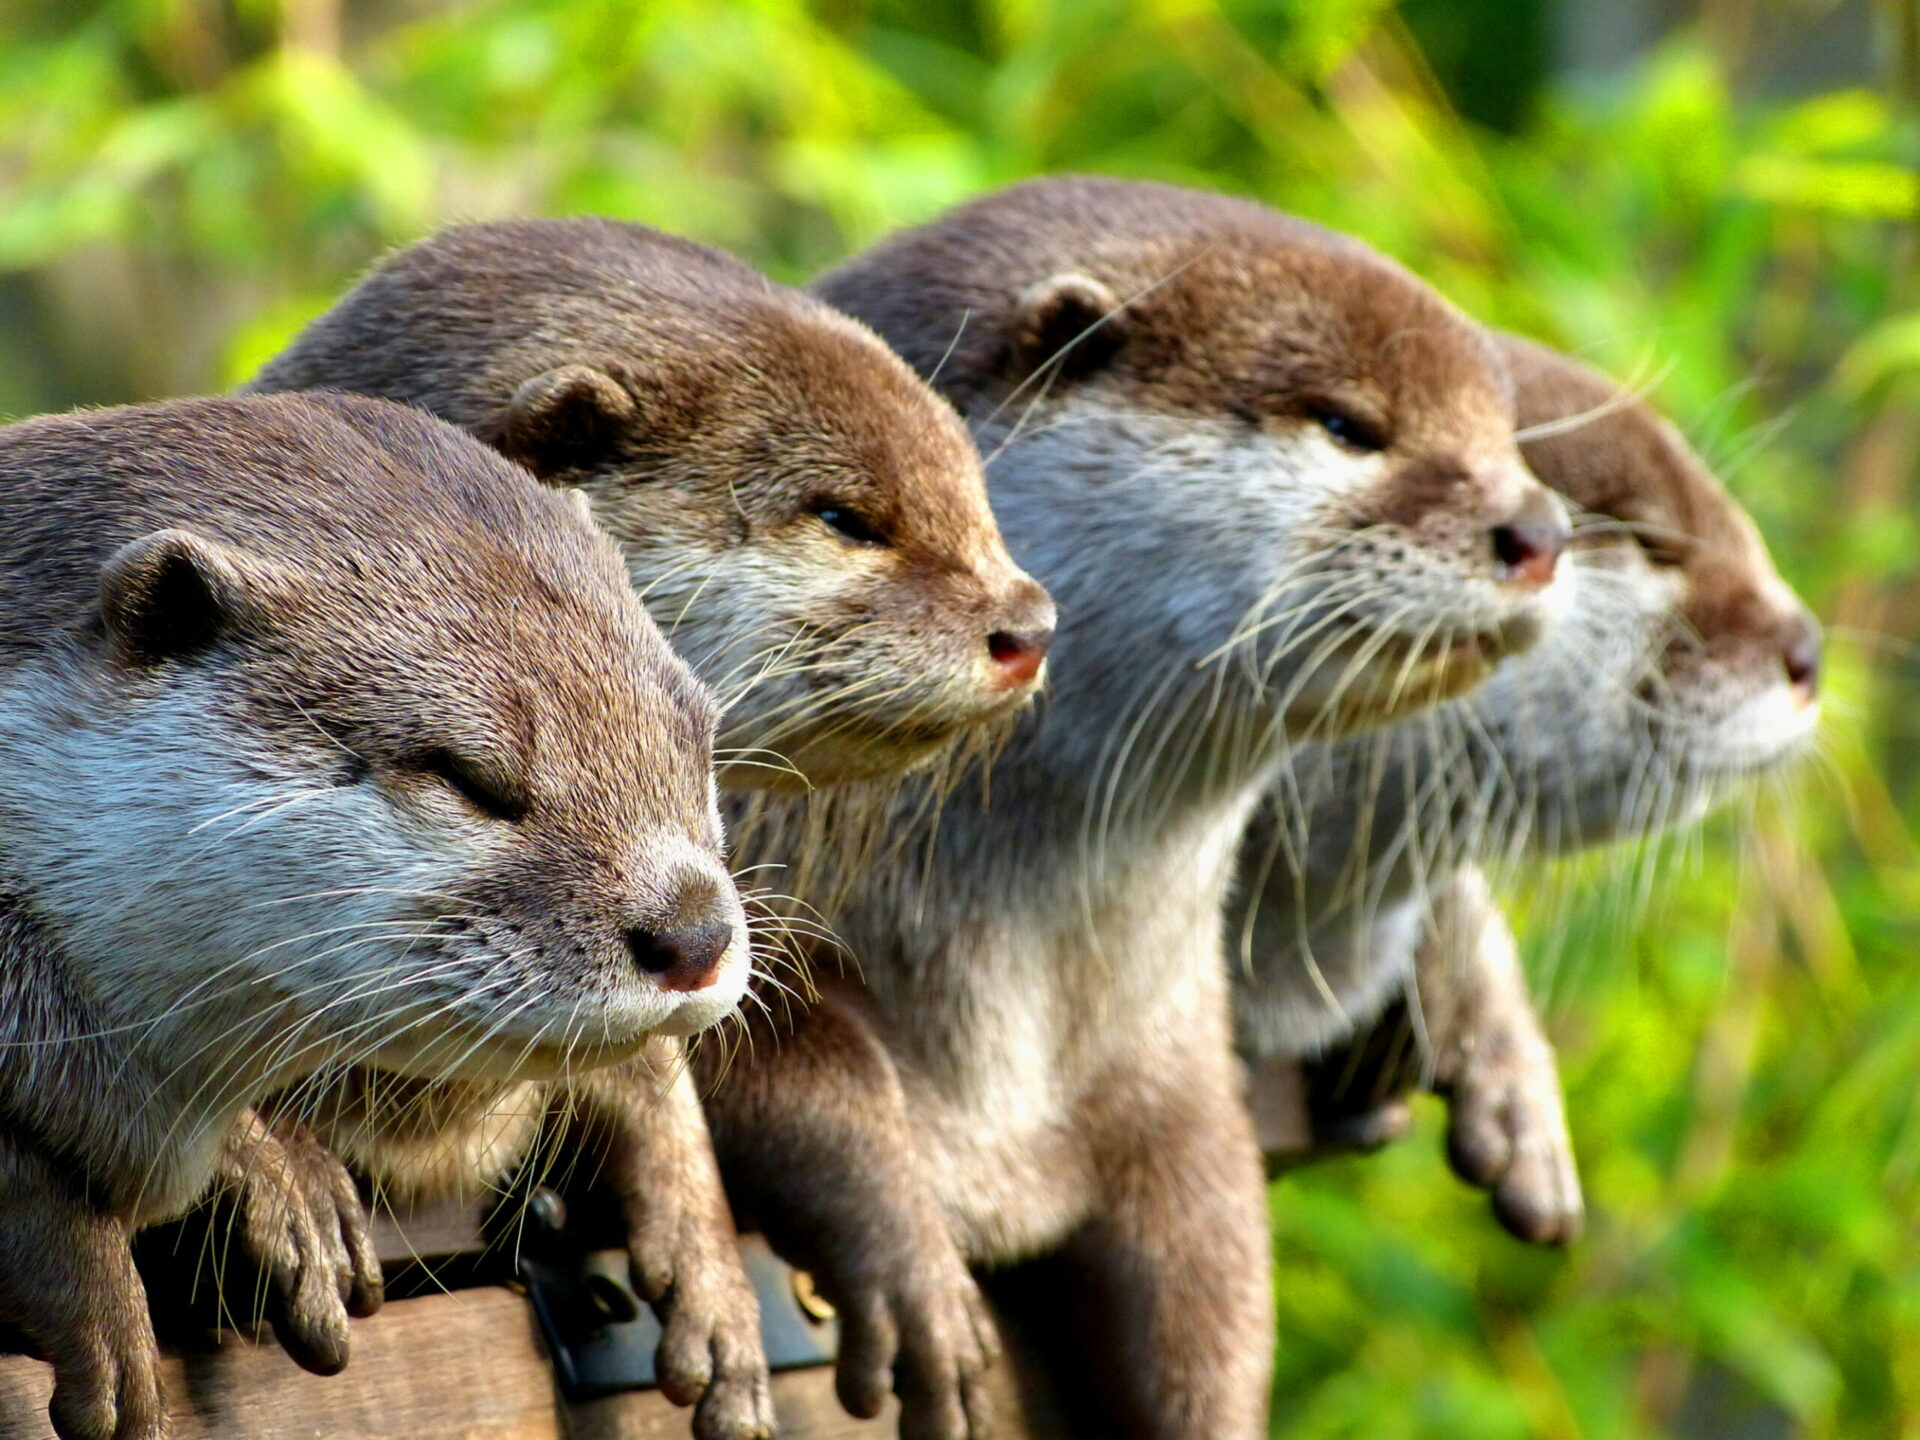 Asian small-clawed otter - Aonyx cinerea at Marwell Zoo